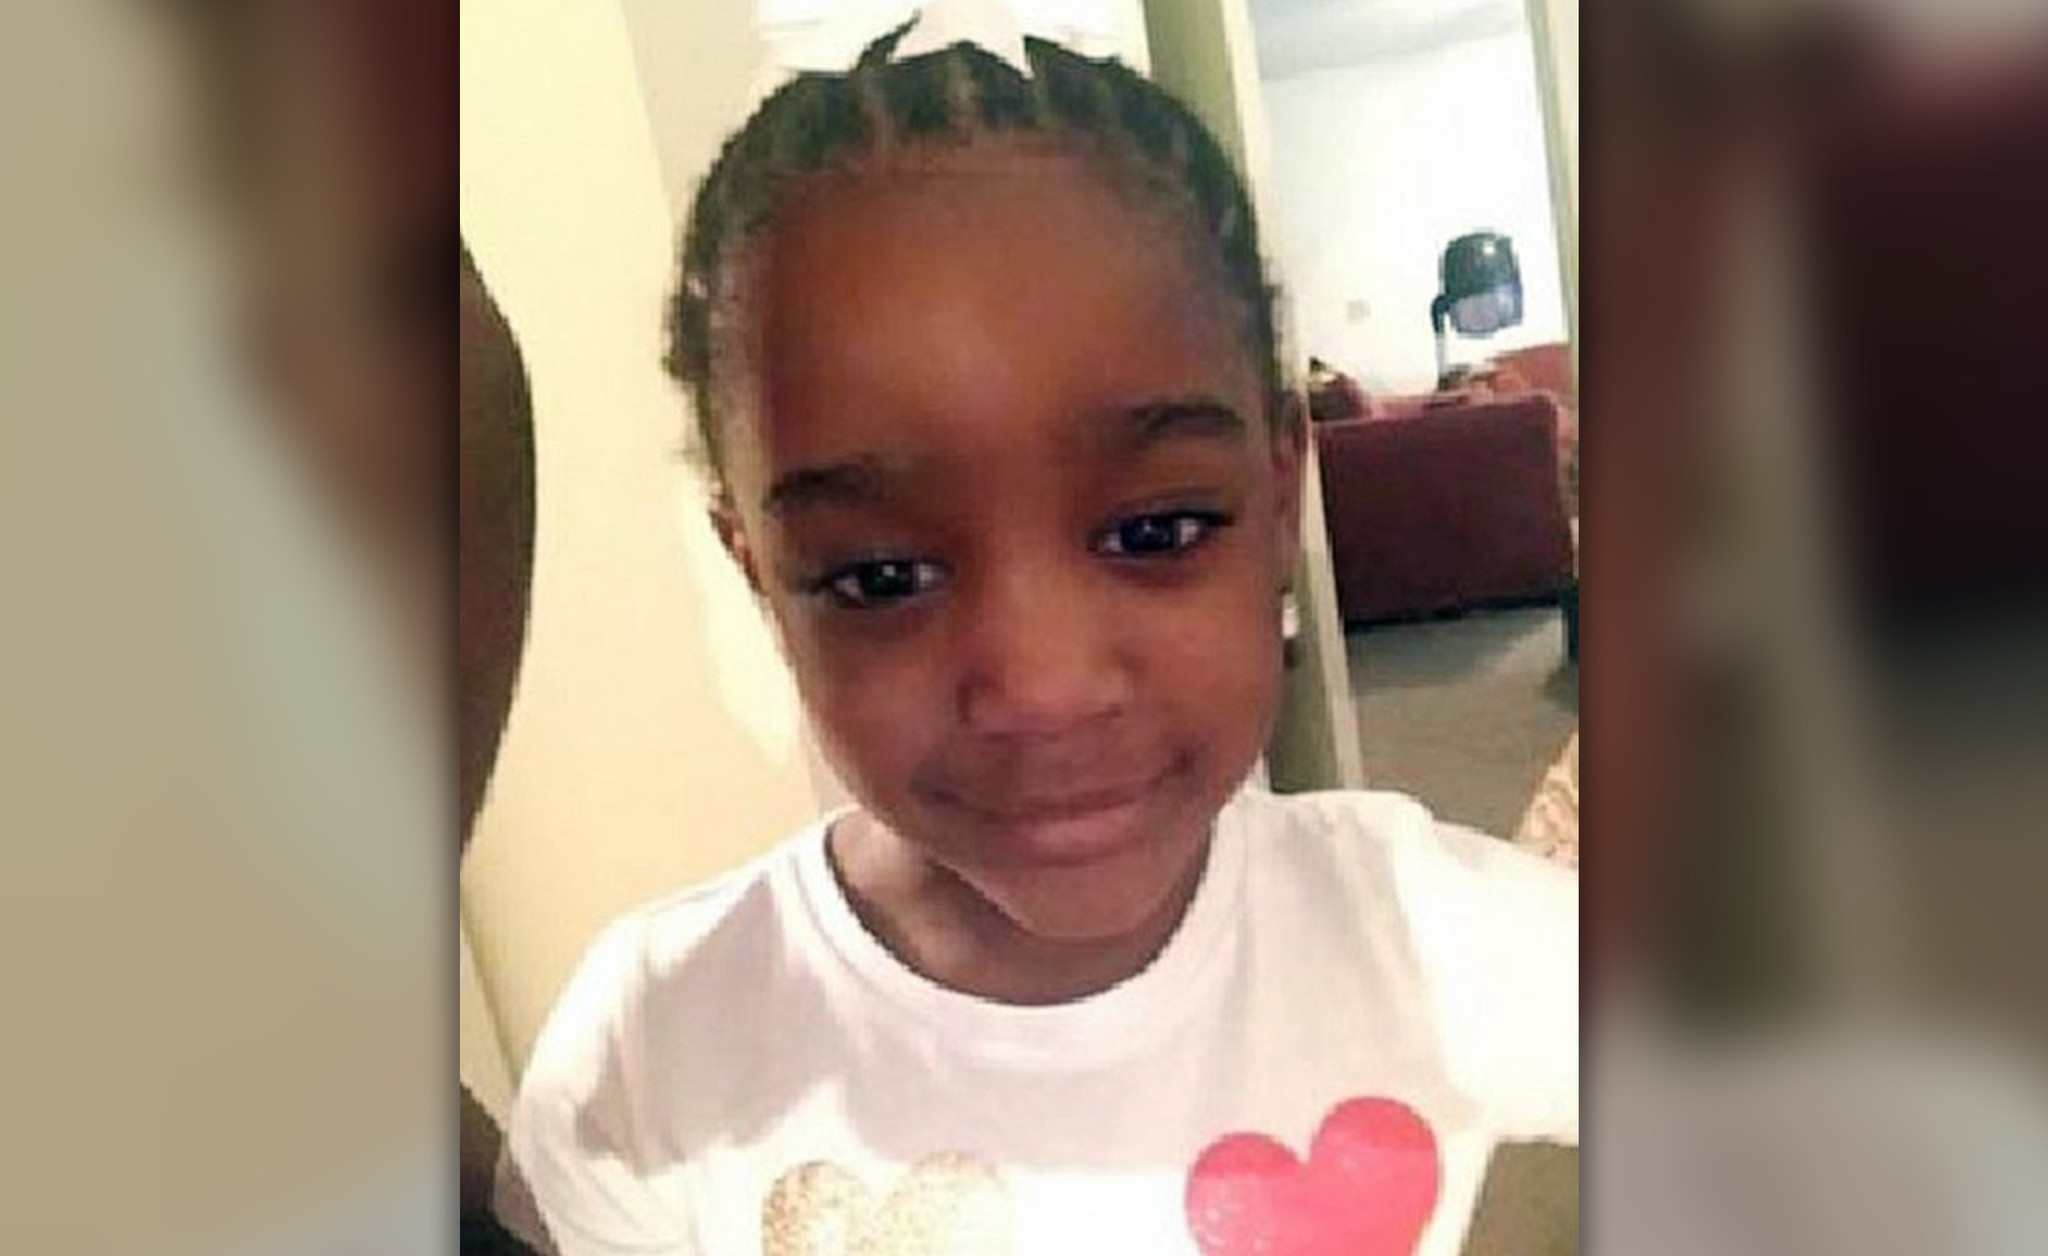 Mother of missing Florida 5-year-old now a person of interest in girl's disappearance